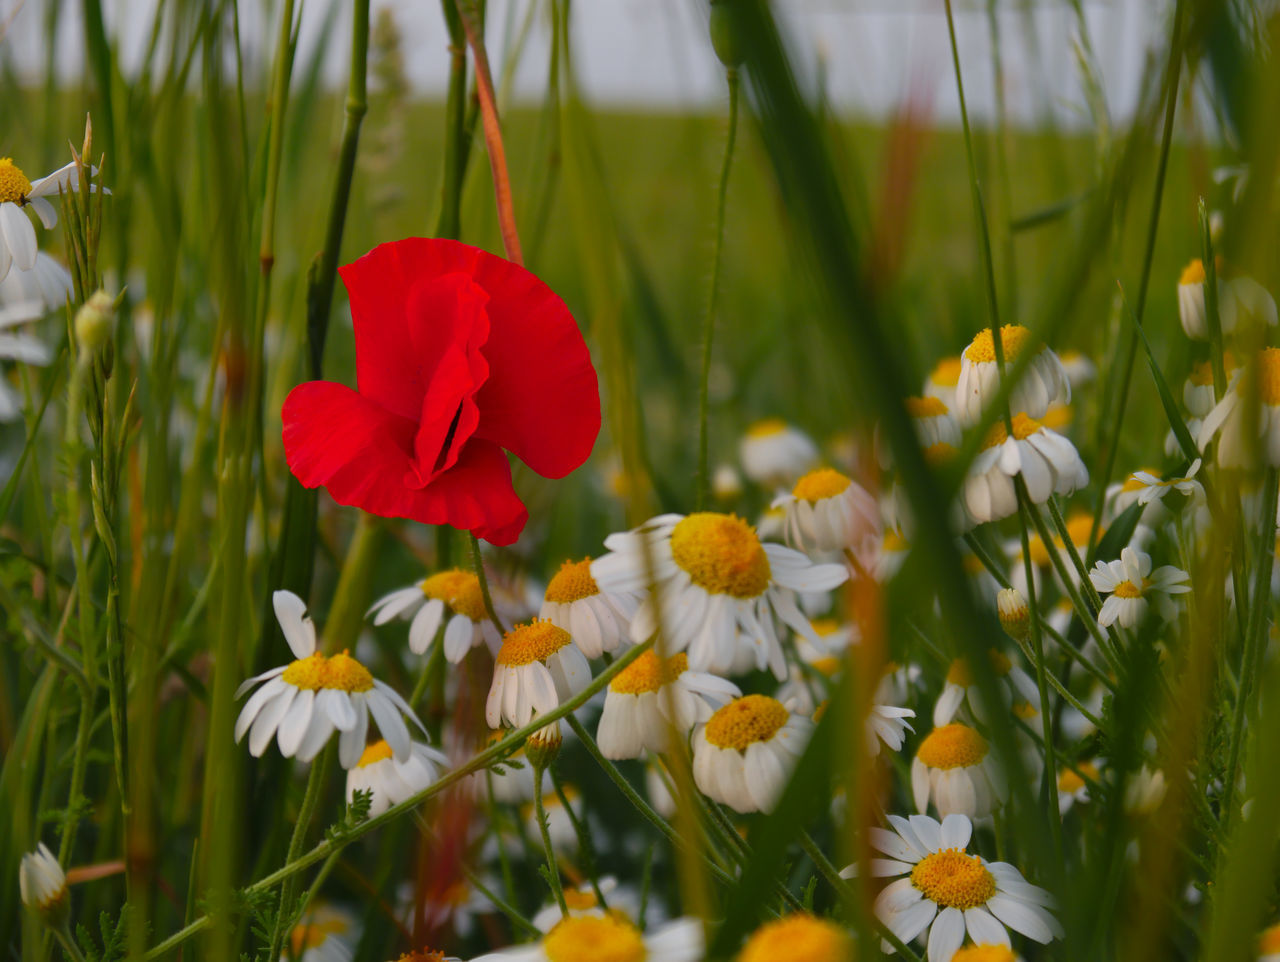 Daisies And Poppy Blooming On Field